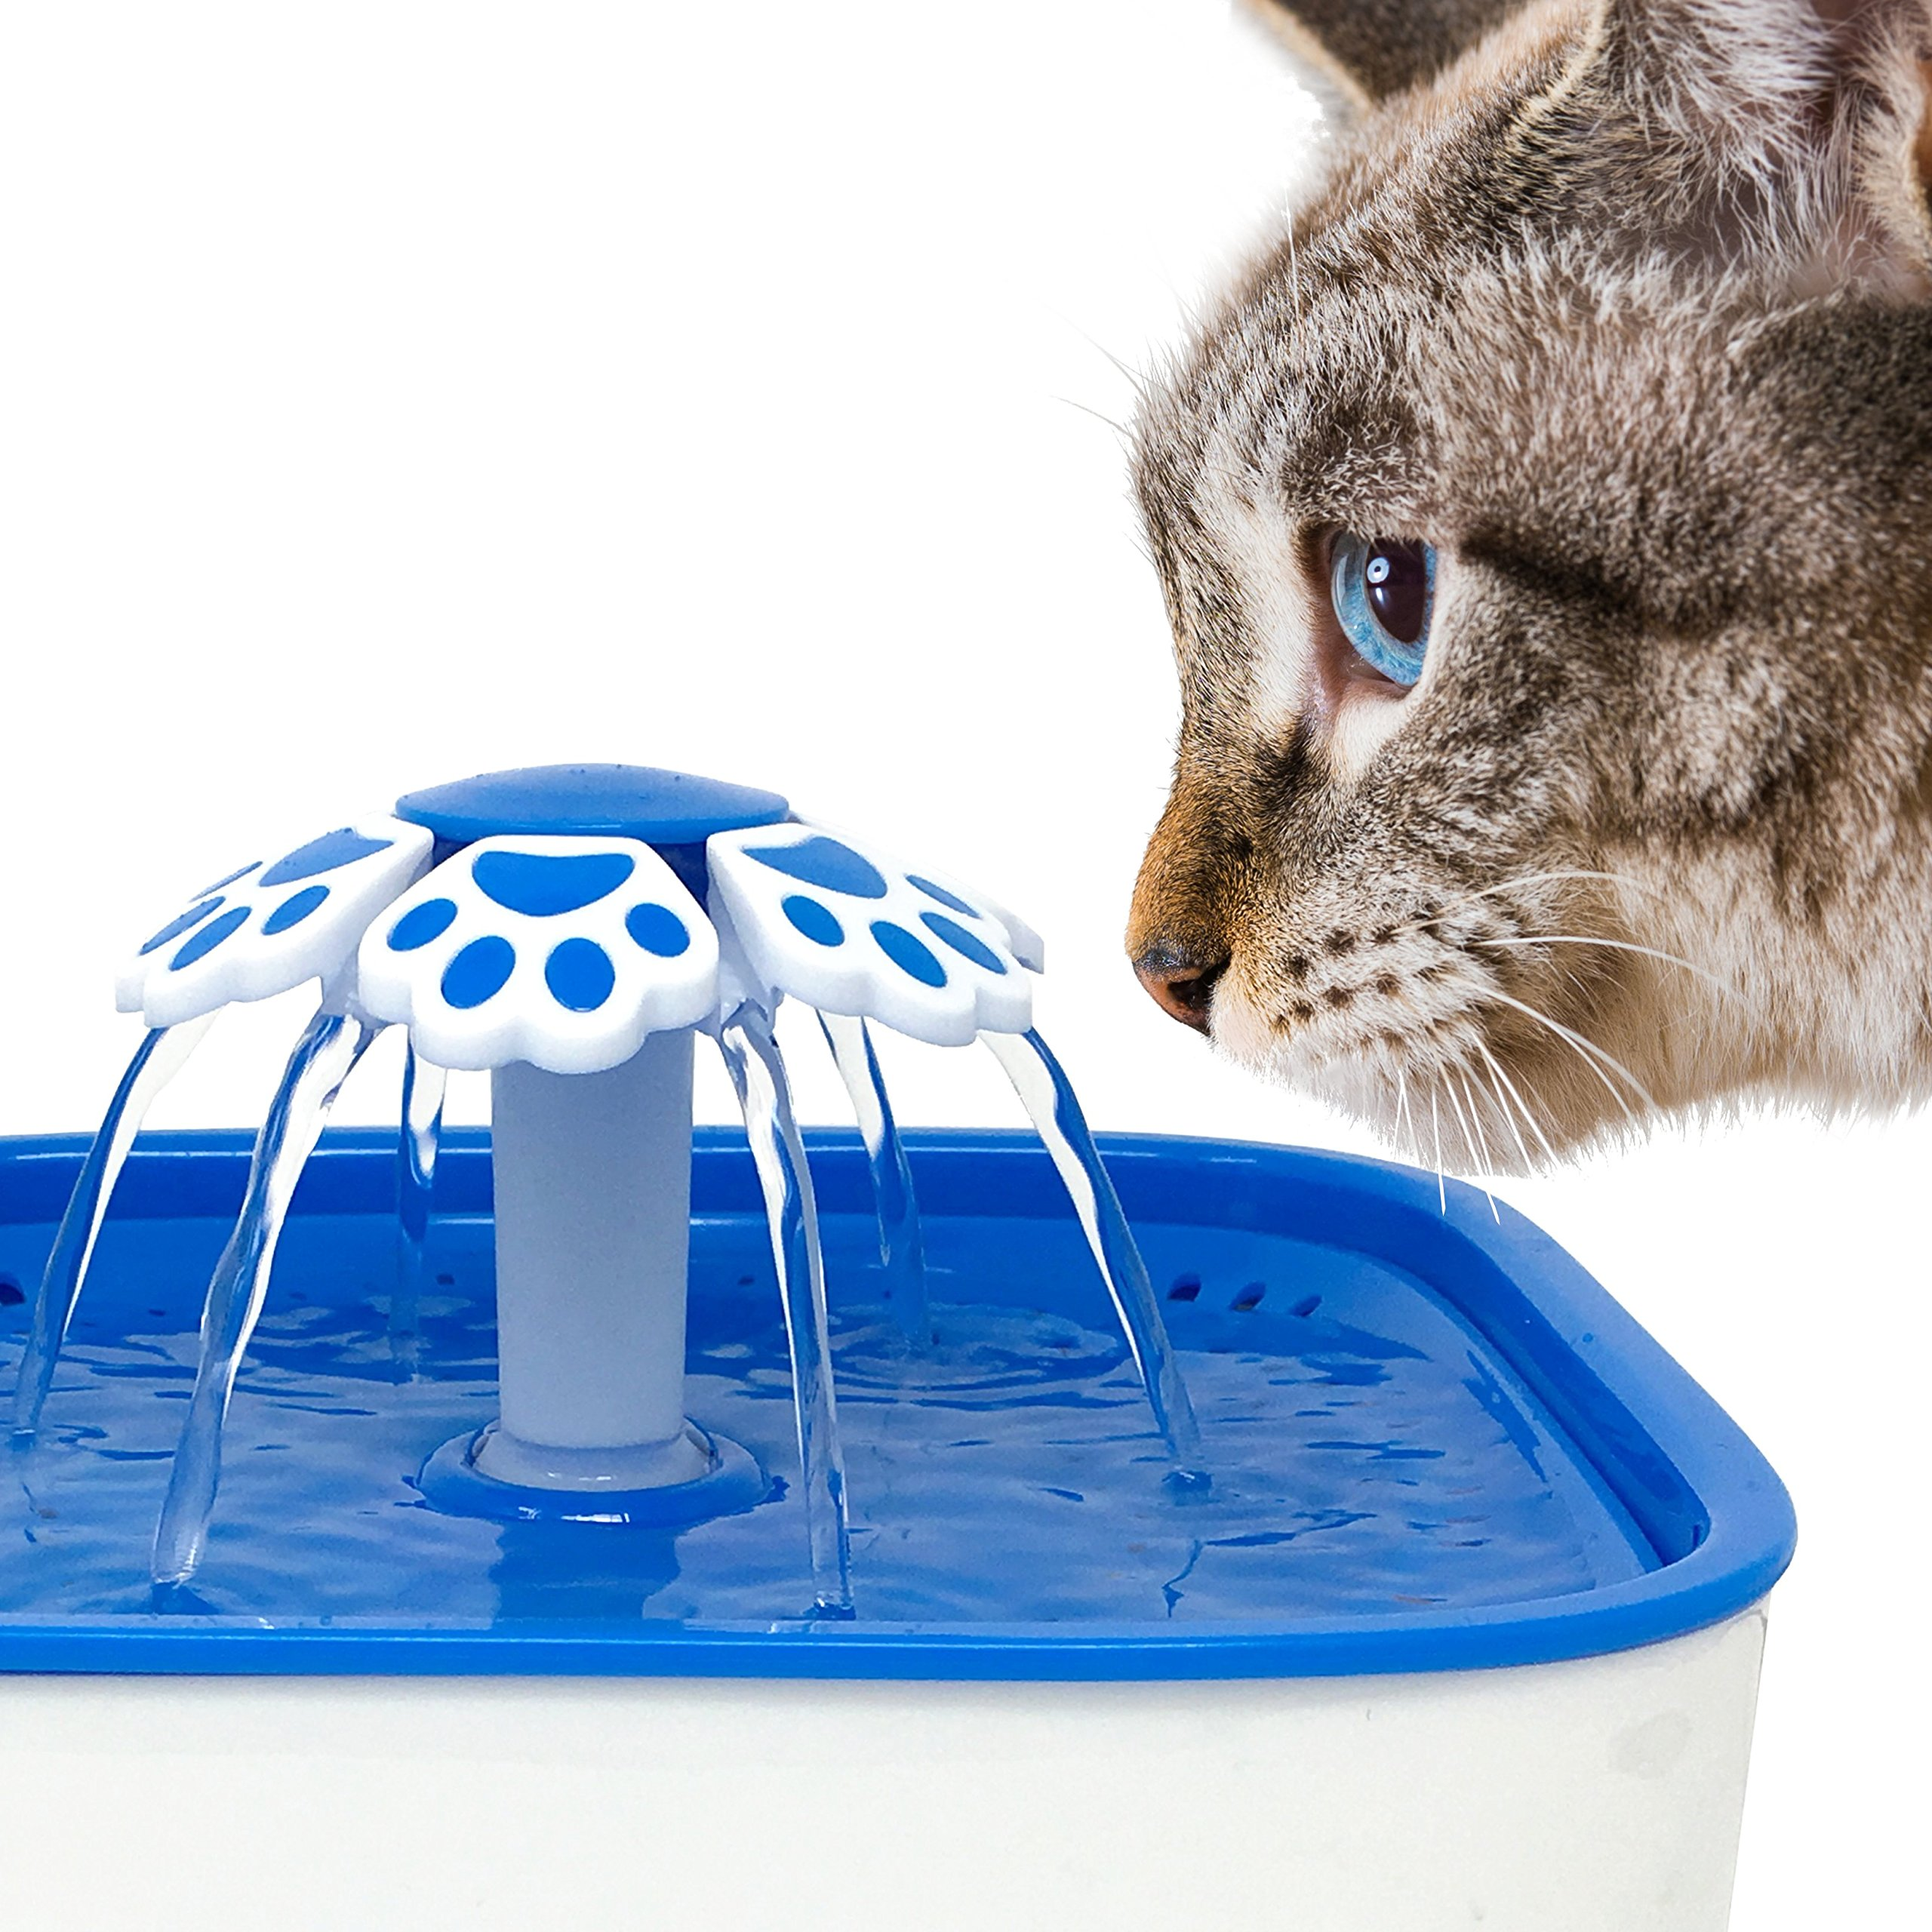 Pet Fit For Life Water Fountain Dispenser Plus Bonus Cat Wand and Mat - 2 Liter Super Quiet Automatic Water Bowl with Charcoal Filter for Dogs, Cats, Birds and Small Animals by Pet Fit For Life (Image #7)